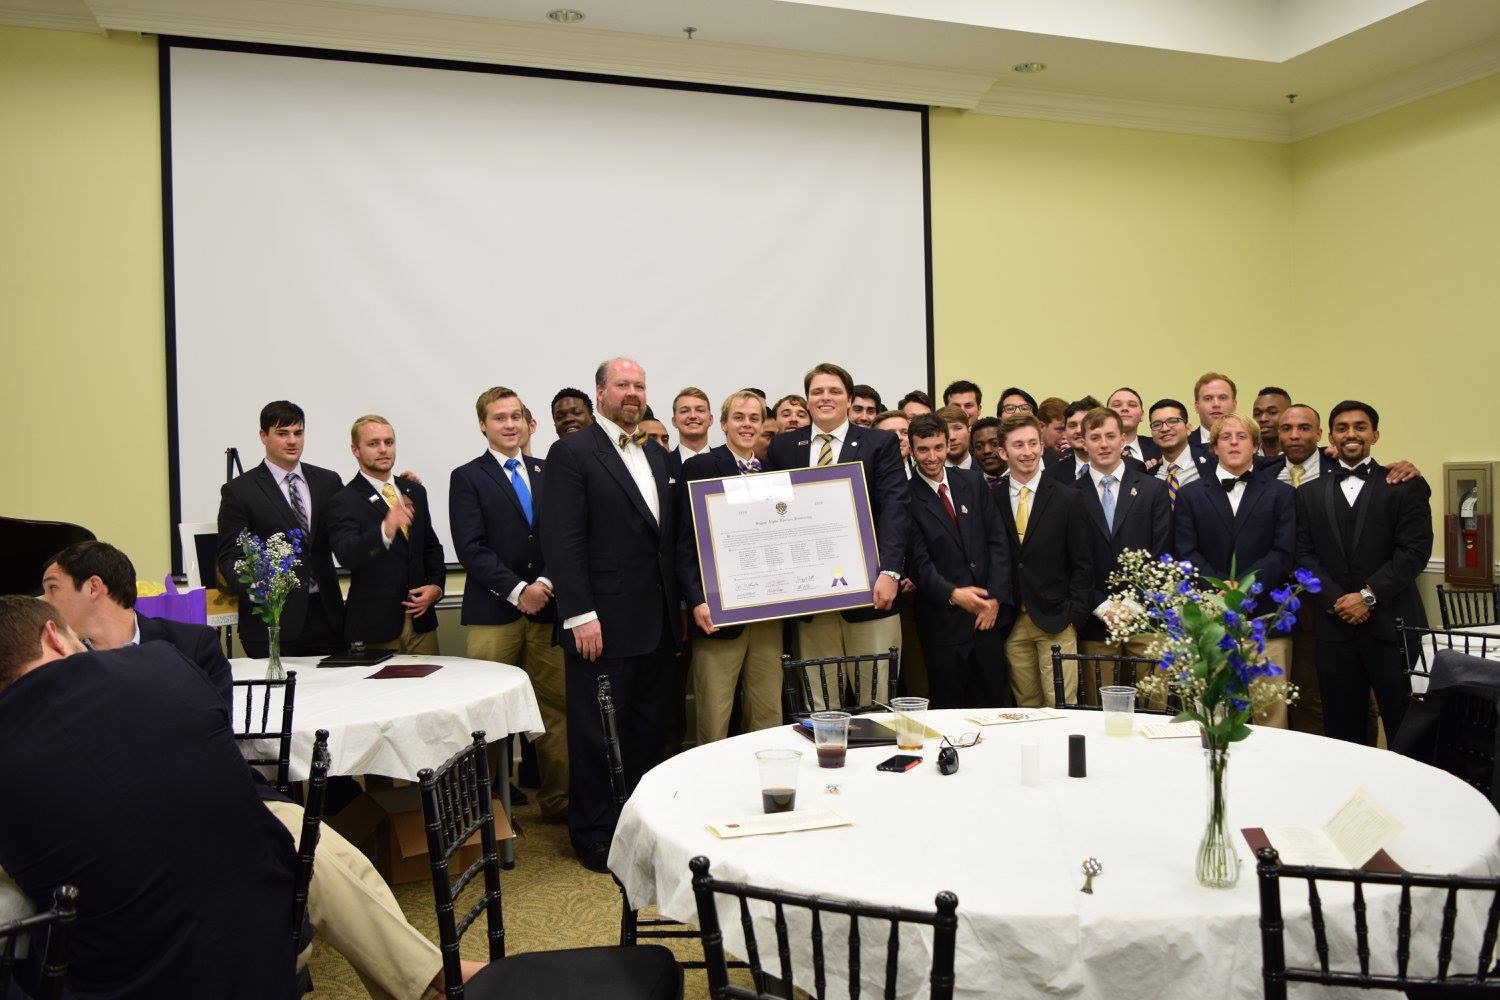 Initiated members of the Phi Alpha chapter and the National president of Sigma Alpha Epsilon with their charter